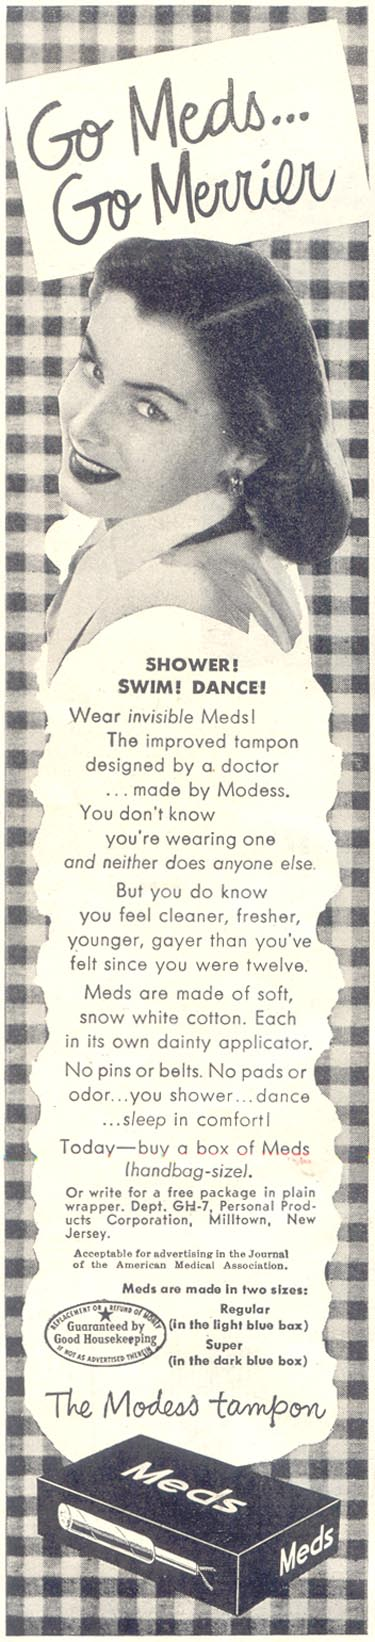 MEDS GOOD HOUSEKEEPING 07/01/1948 p. 96